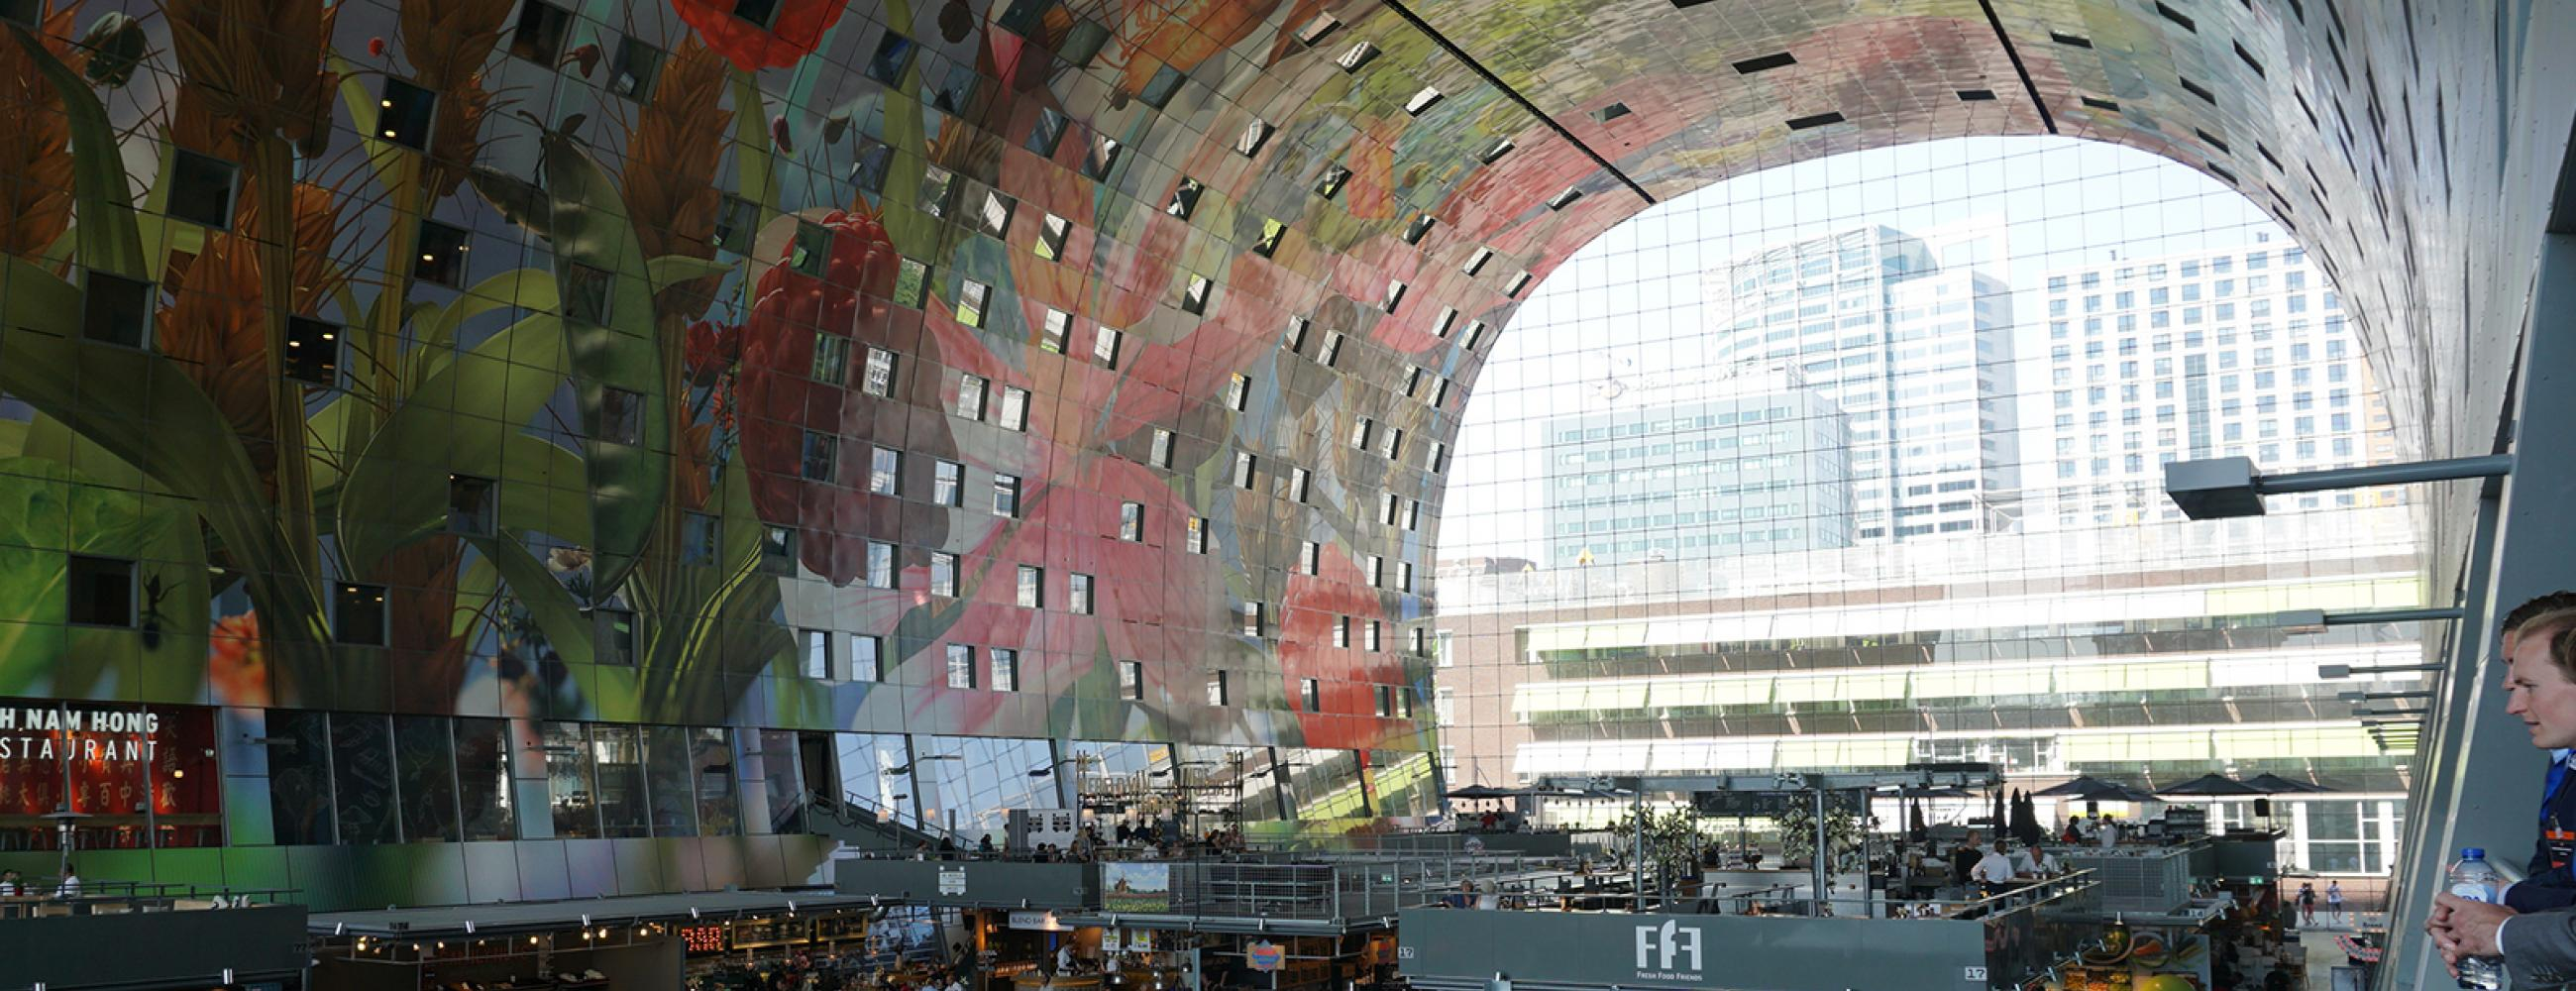 Tour - Markthal - Young Professionals Seminar 2015